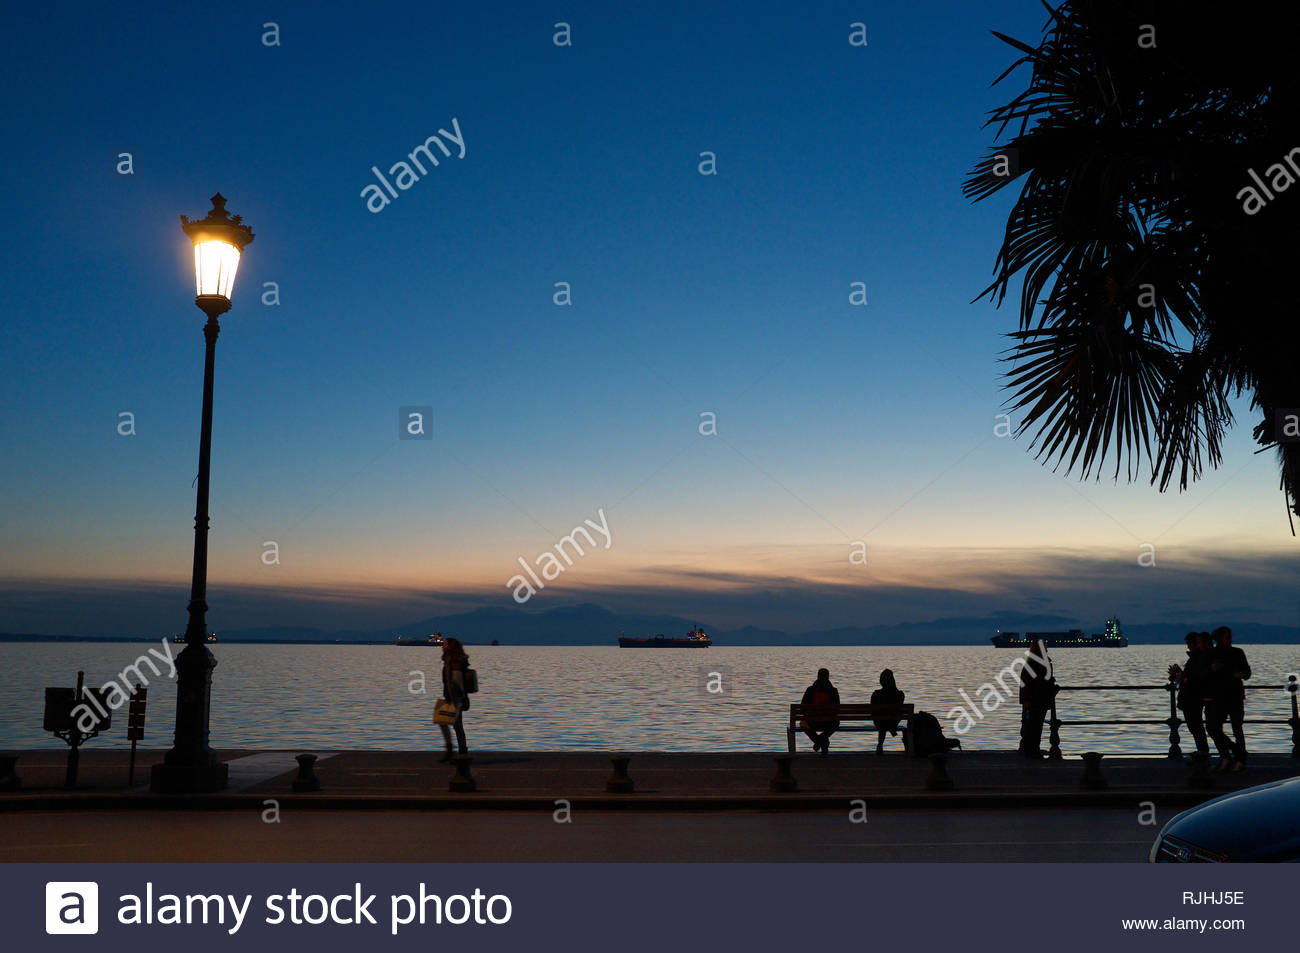 Winter sunset by the waterfront in the city of Thessaloniki, Central Macedonia, Greece. Stock Photo